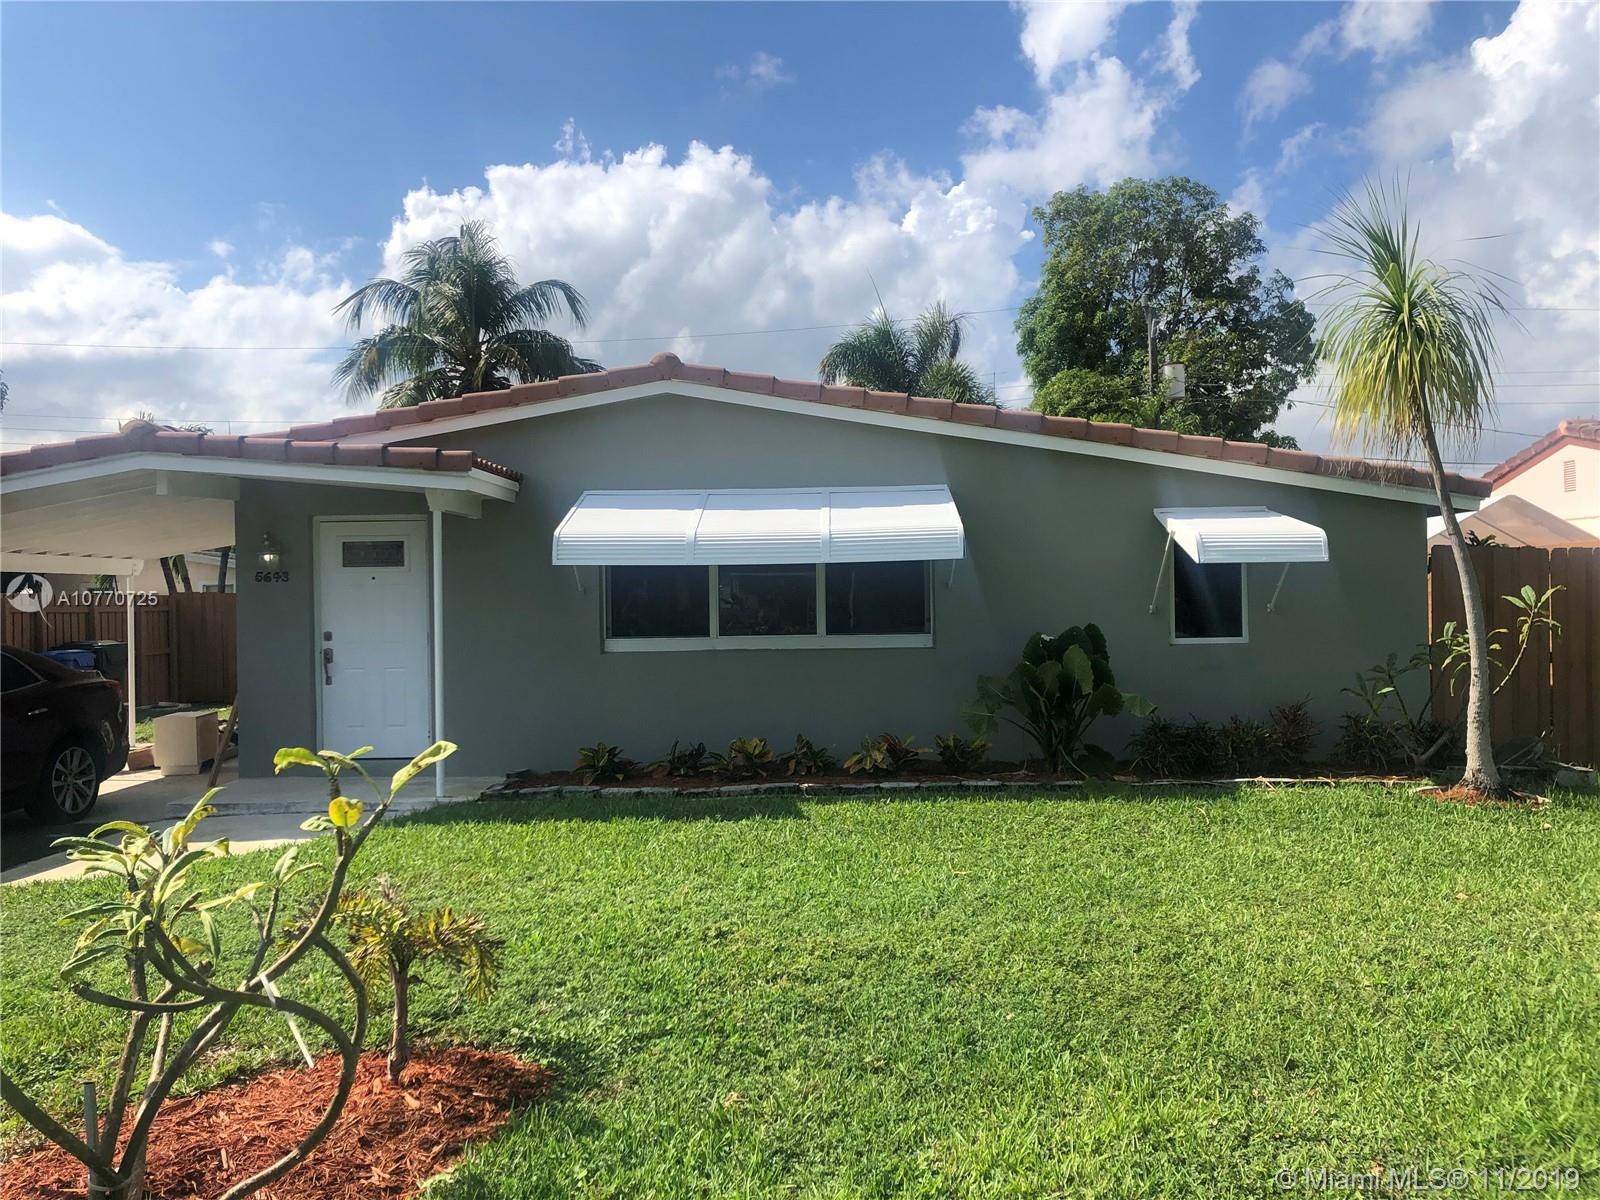 Awesome remodeled gem in the sought after Patterson Park subdivision of Oakland park! This home is a must see with updates in the kitchen, flooring, along with beautifully updated bathrooms and brand new paint throughout the interior and exterior of the home. This home also features a spacious front yard and a backyard with a pool that will be great for family gatherings and entertainment. Washer and dryer included. This home won't last long!!